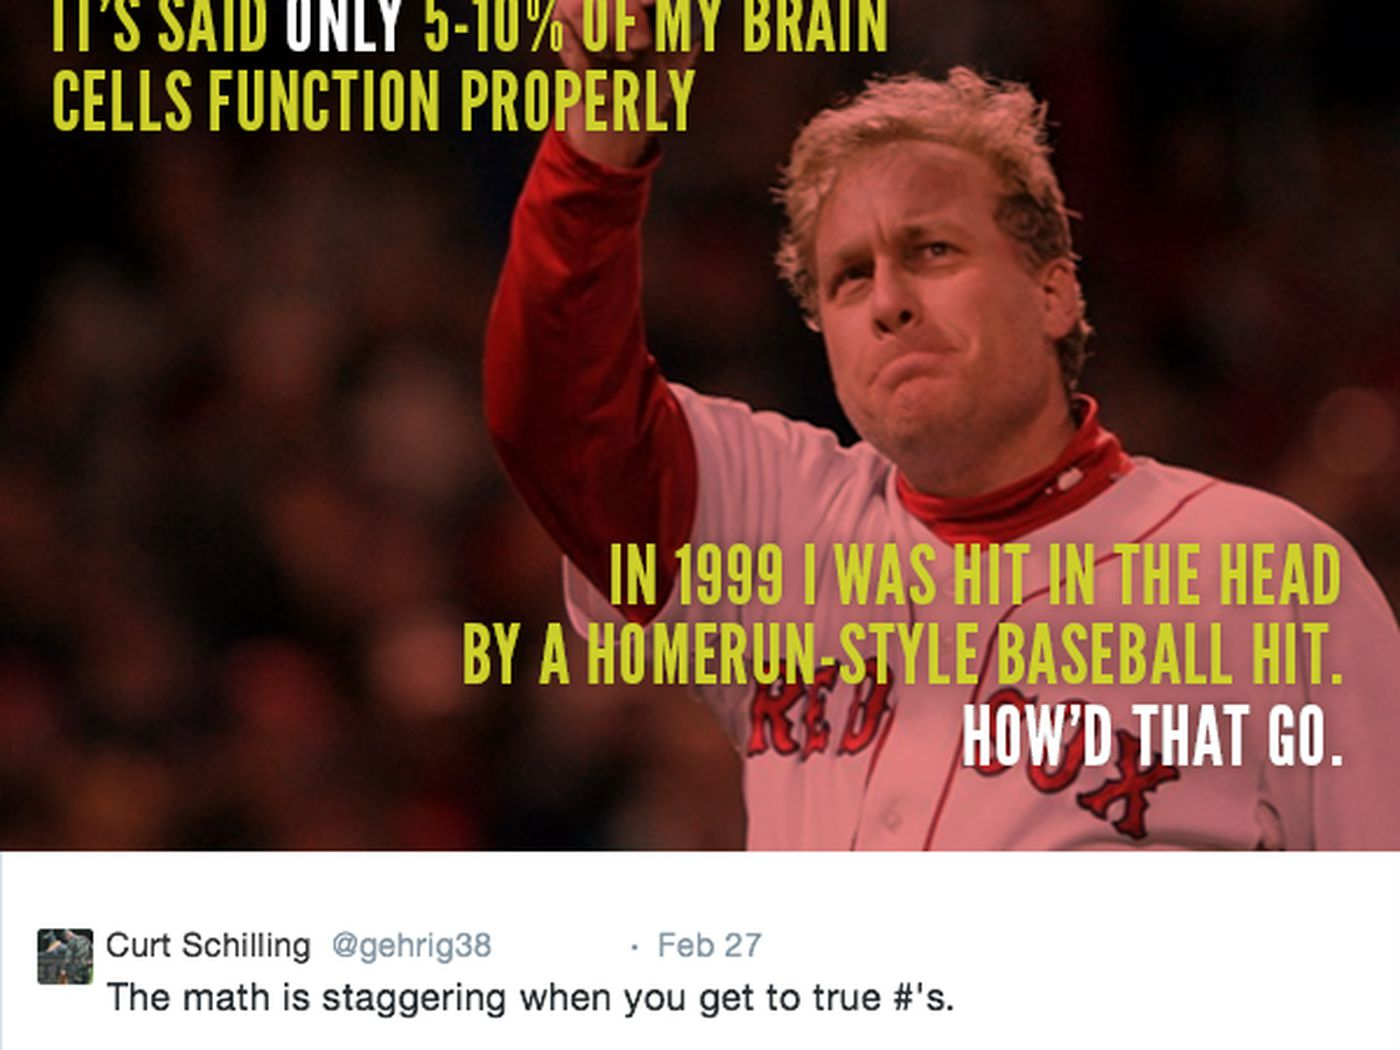 7 more tweets from curt schilling even dumber than his nazi muslim